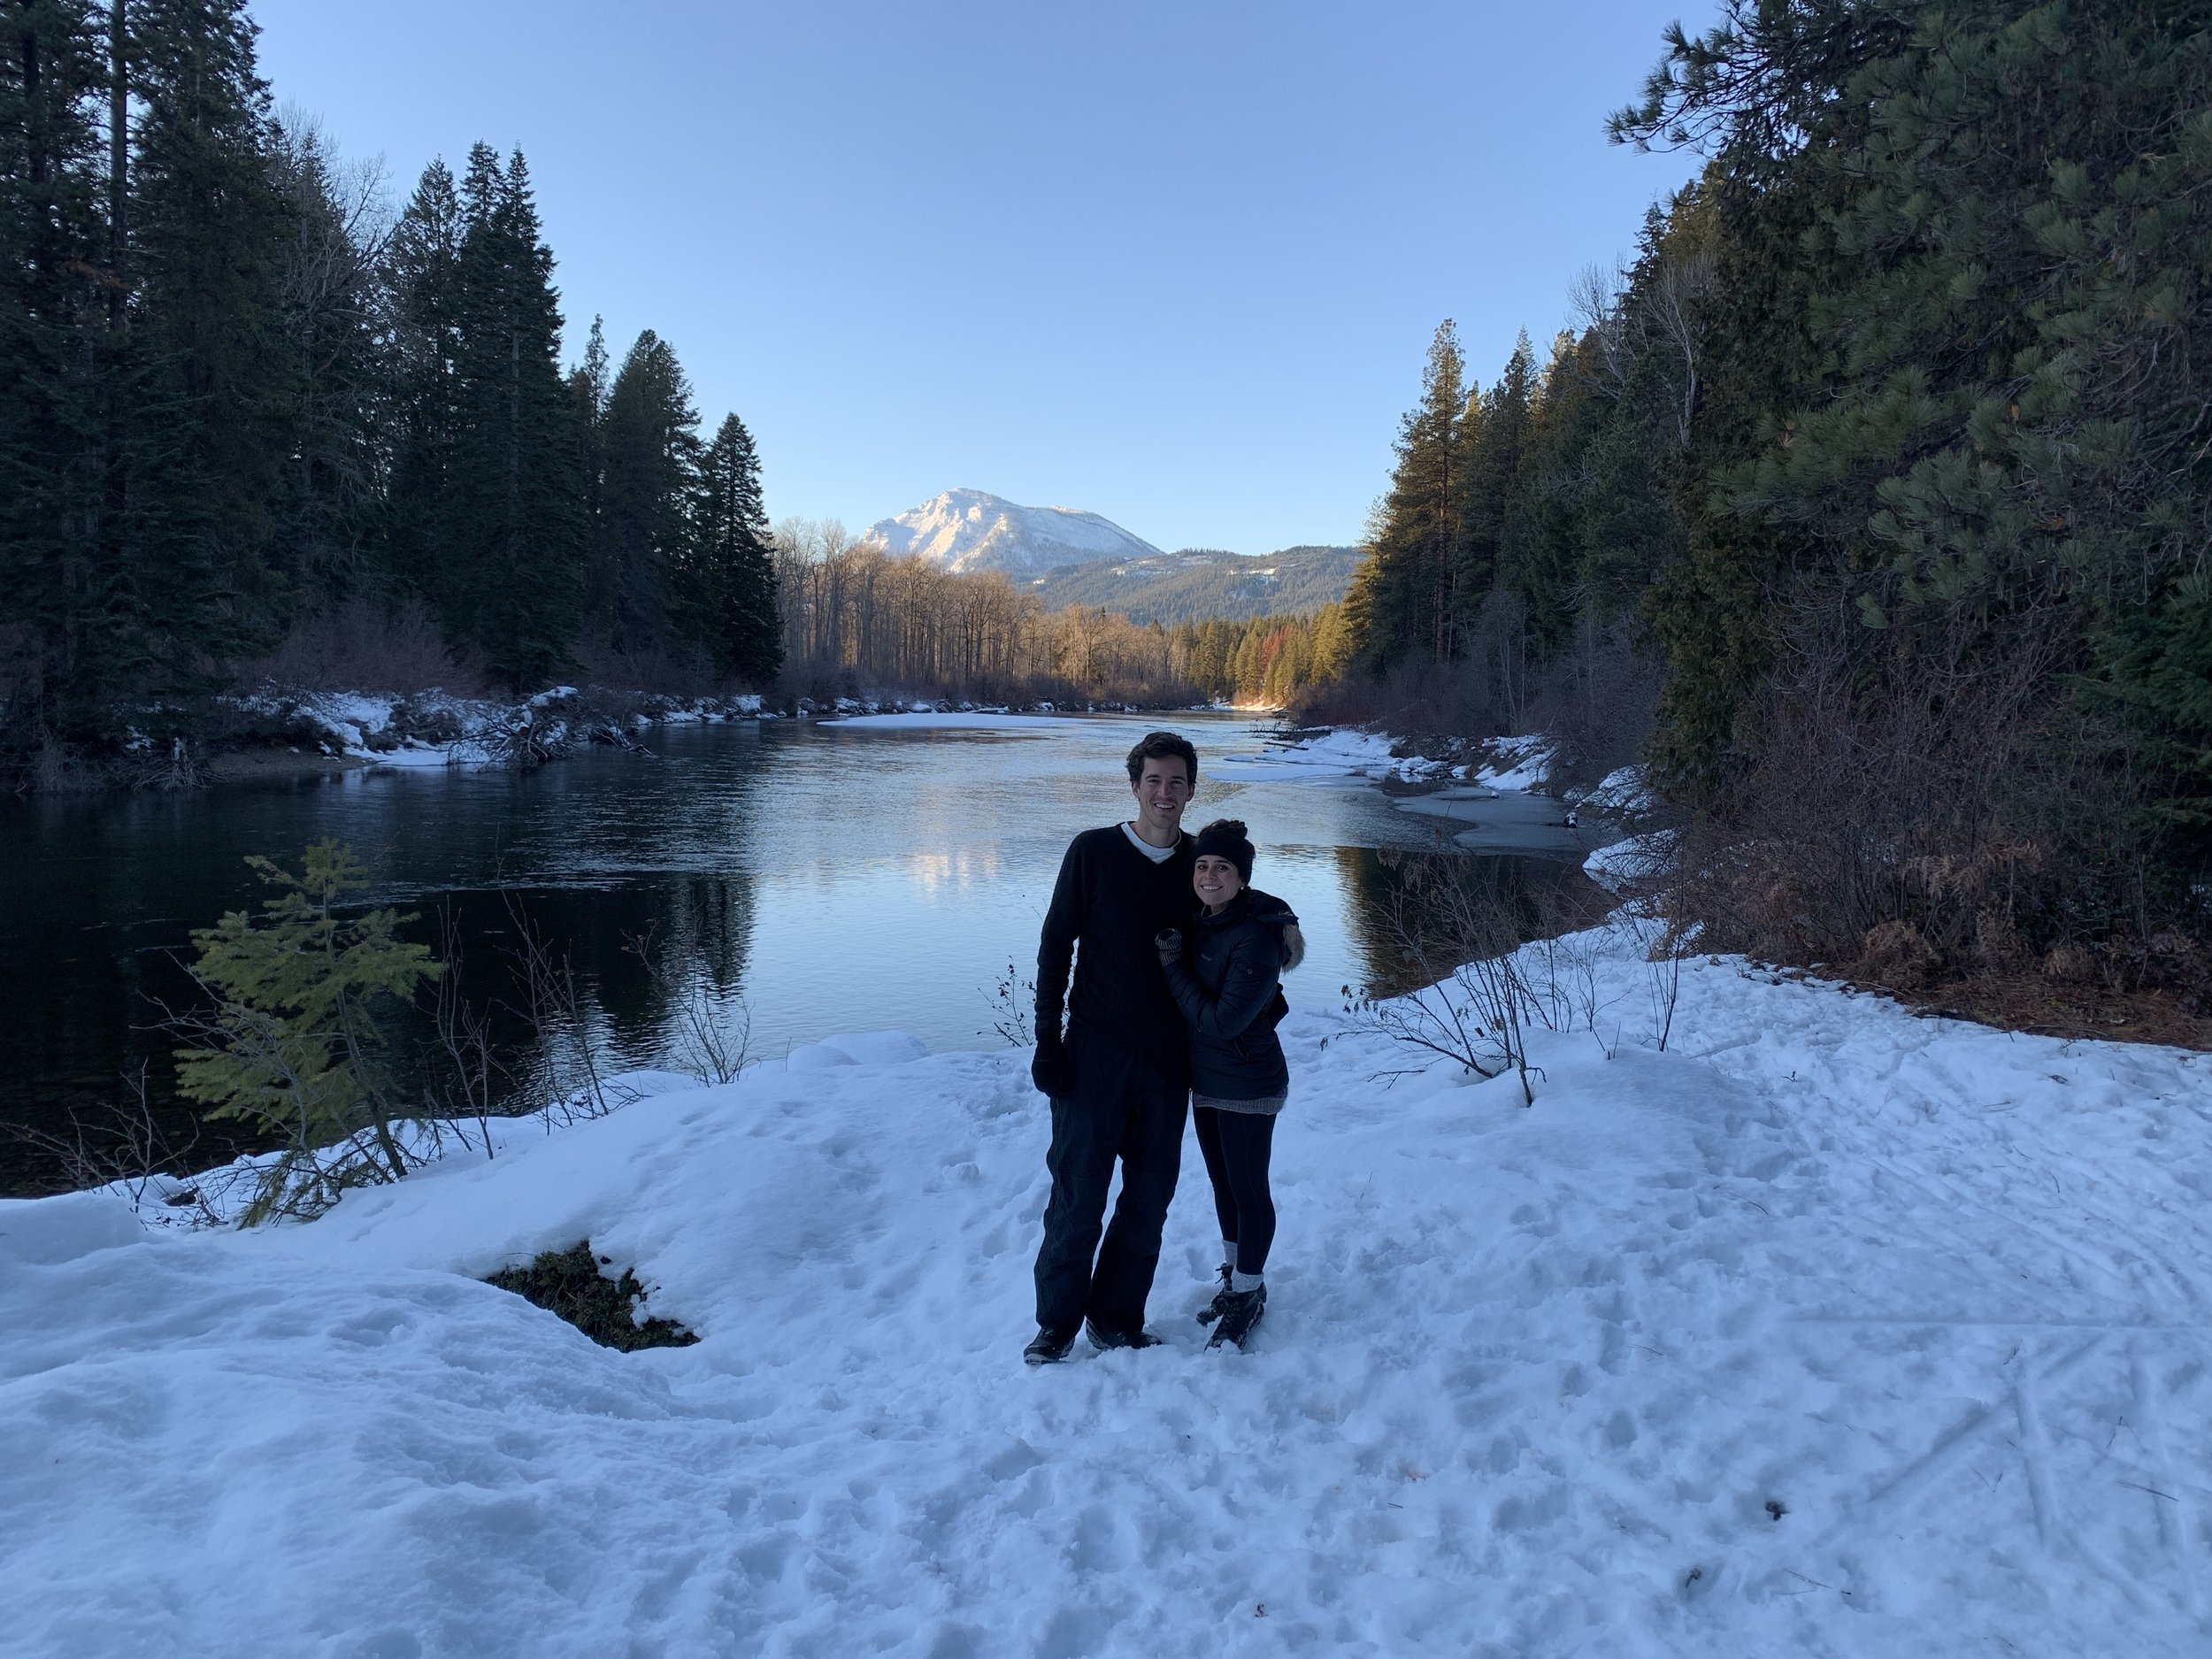 Taking a break from cross-country skiing on the very last day of 2018! Somewhere in the Cascades.